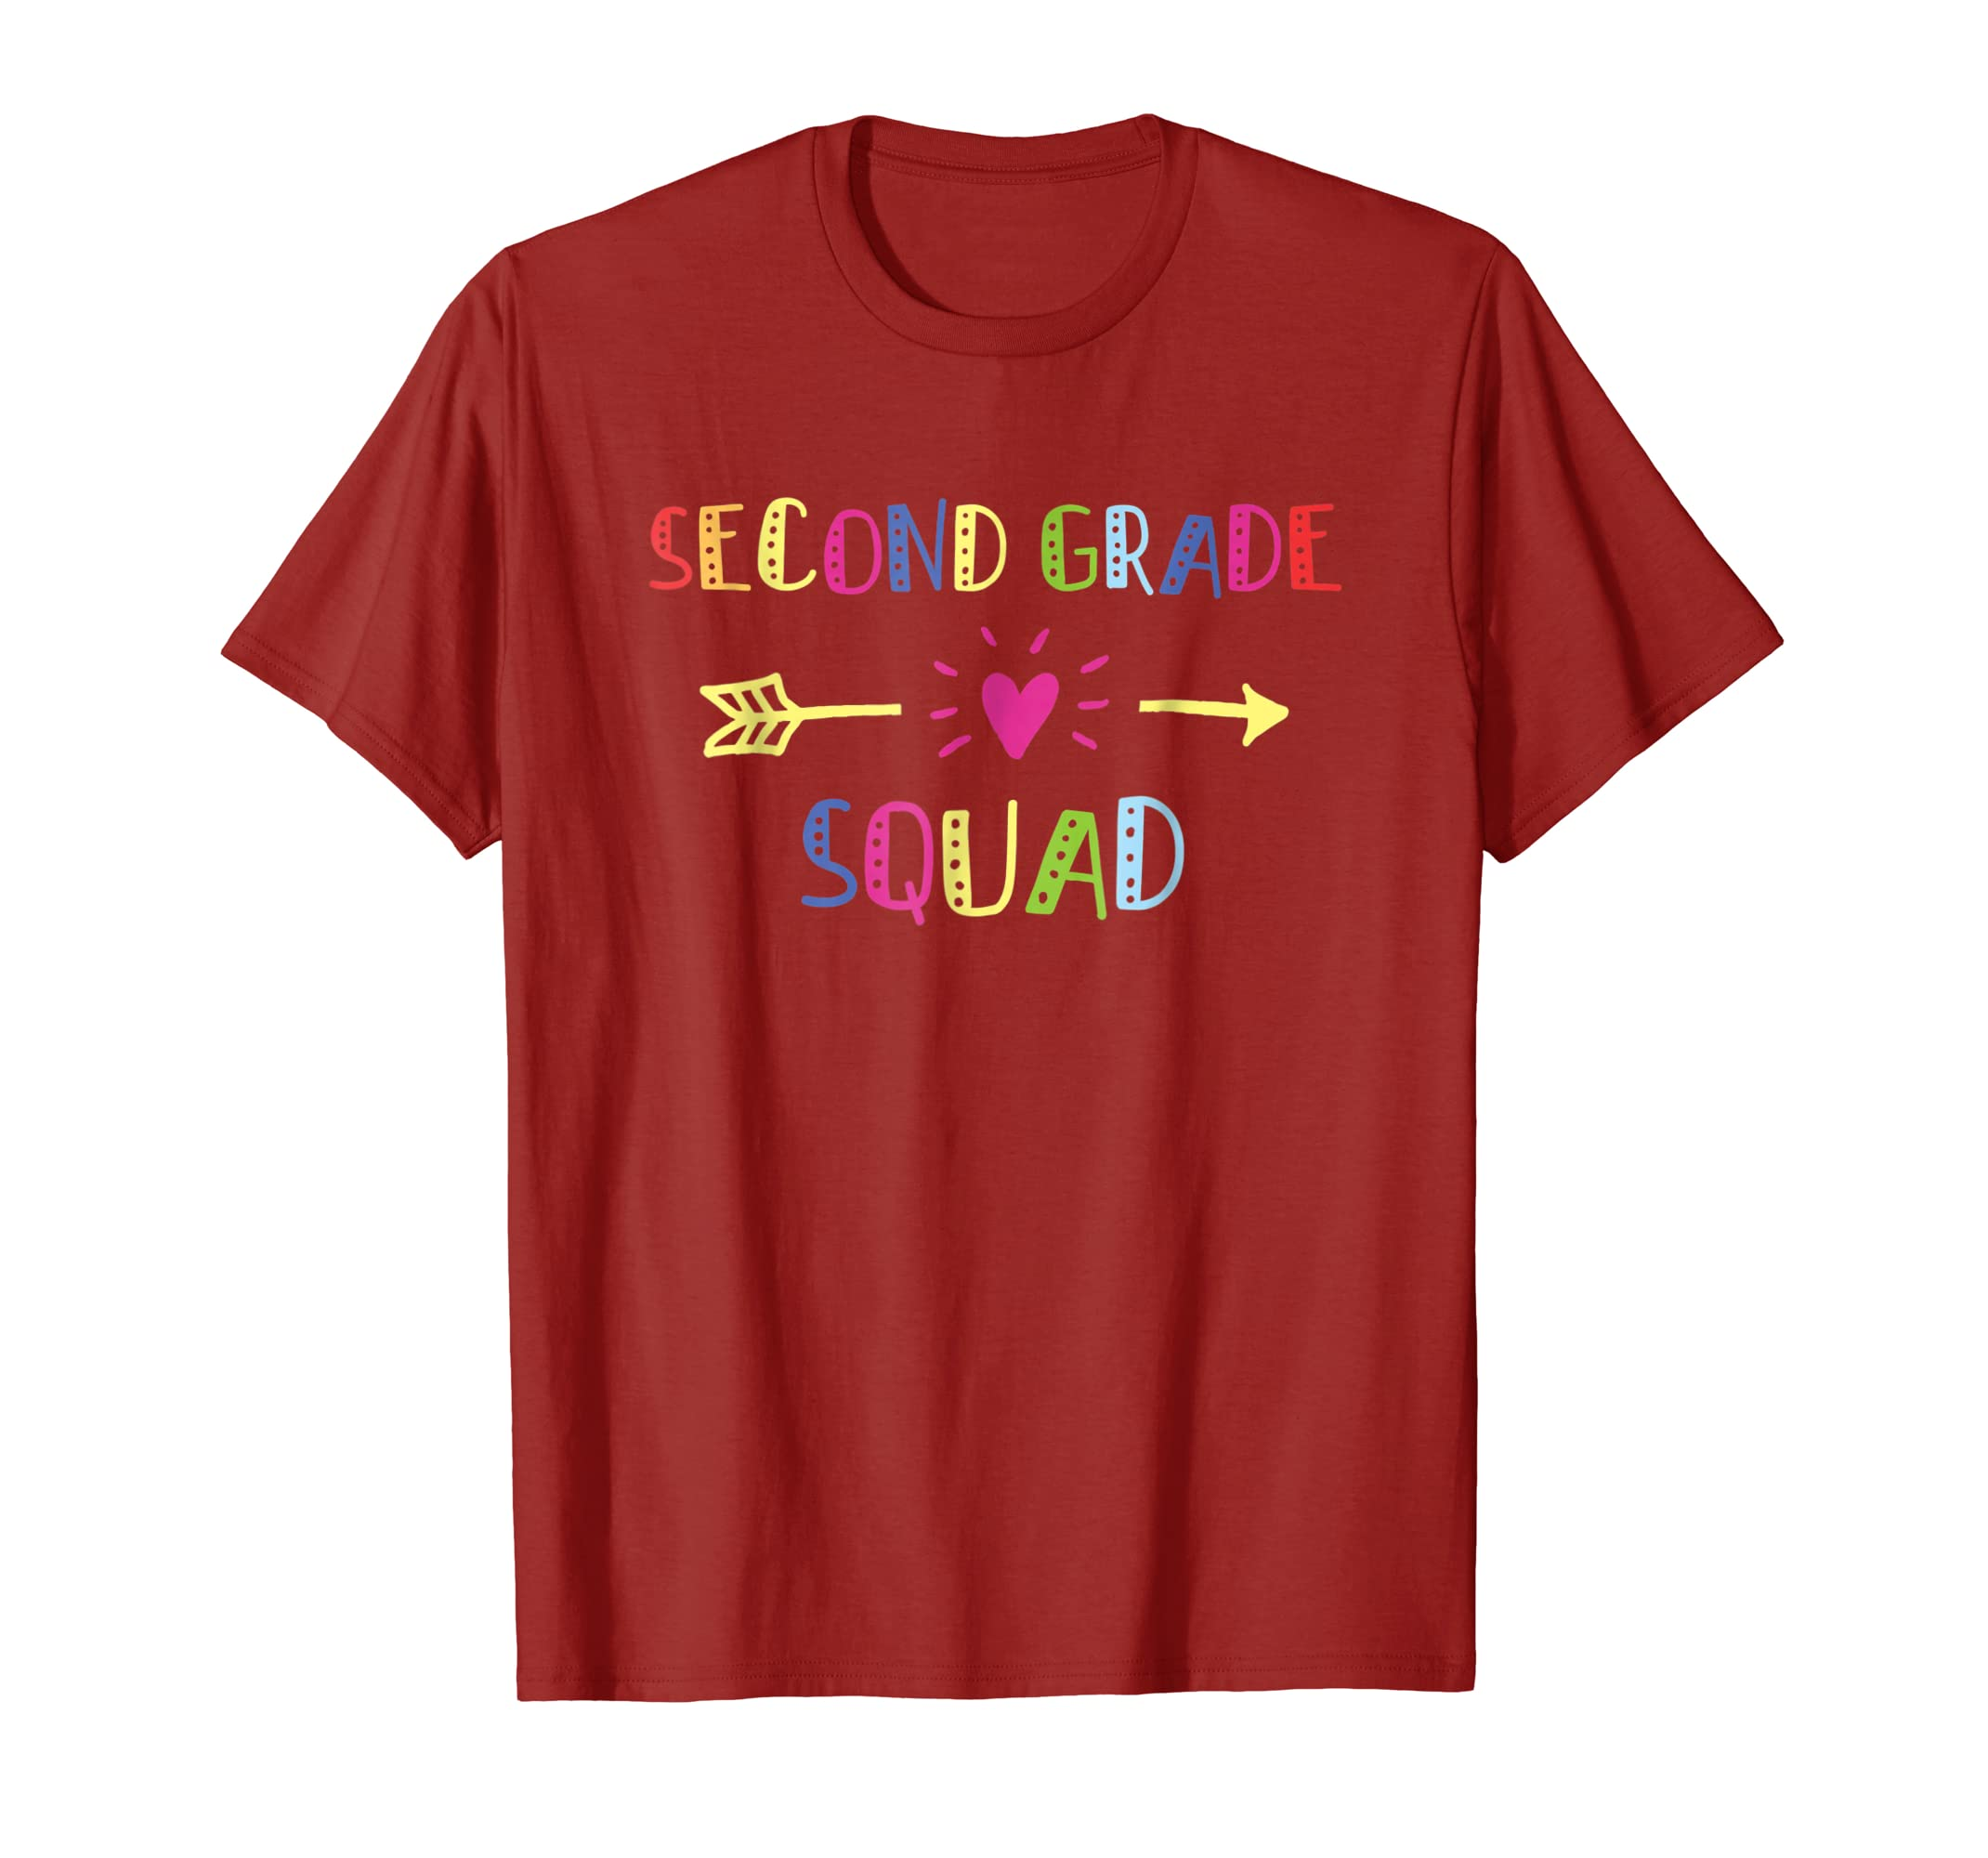 2nd Second Grade Squad Shirt Happy First Day Of School Kids